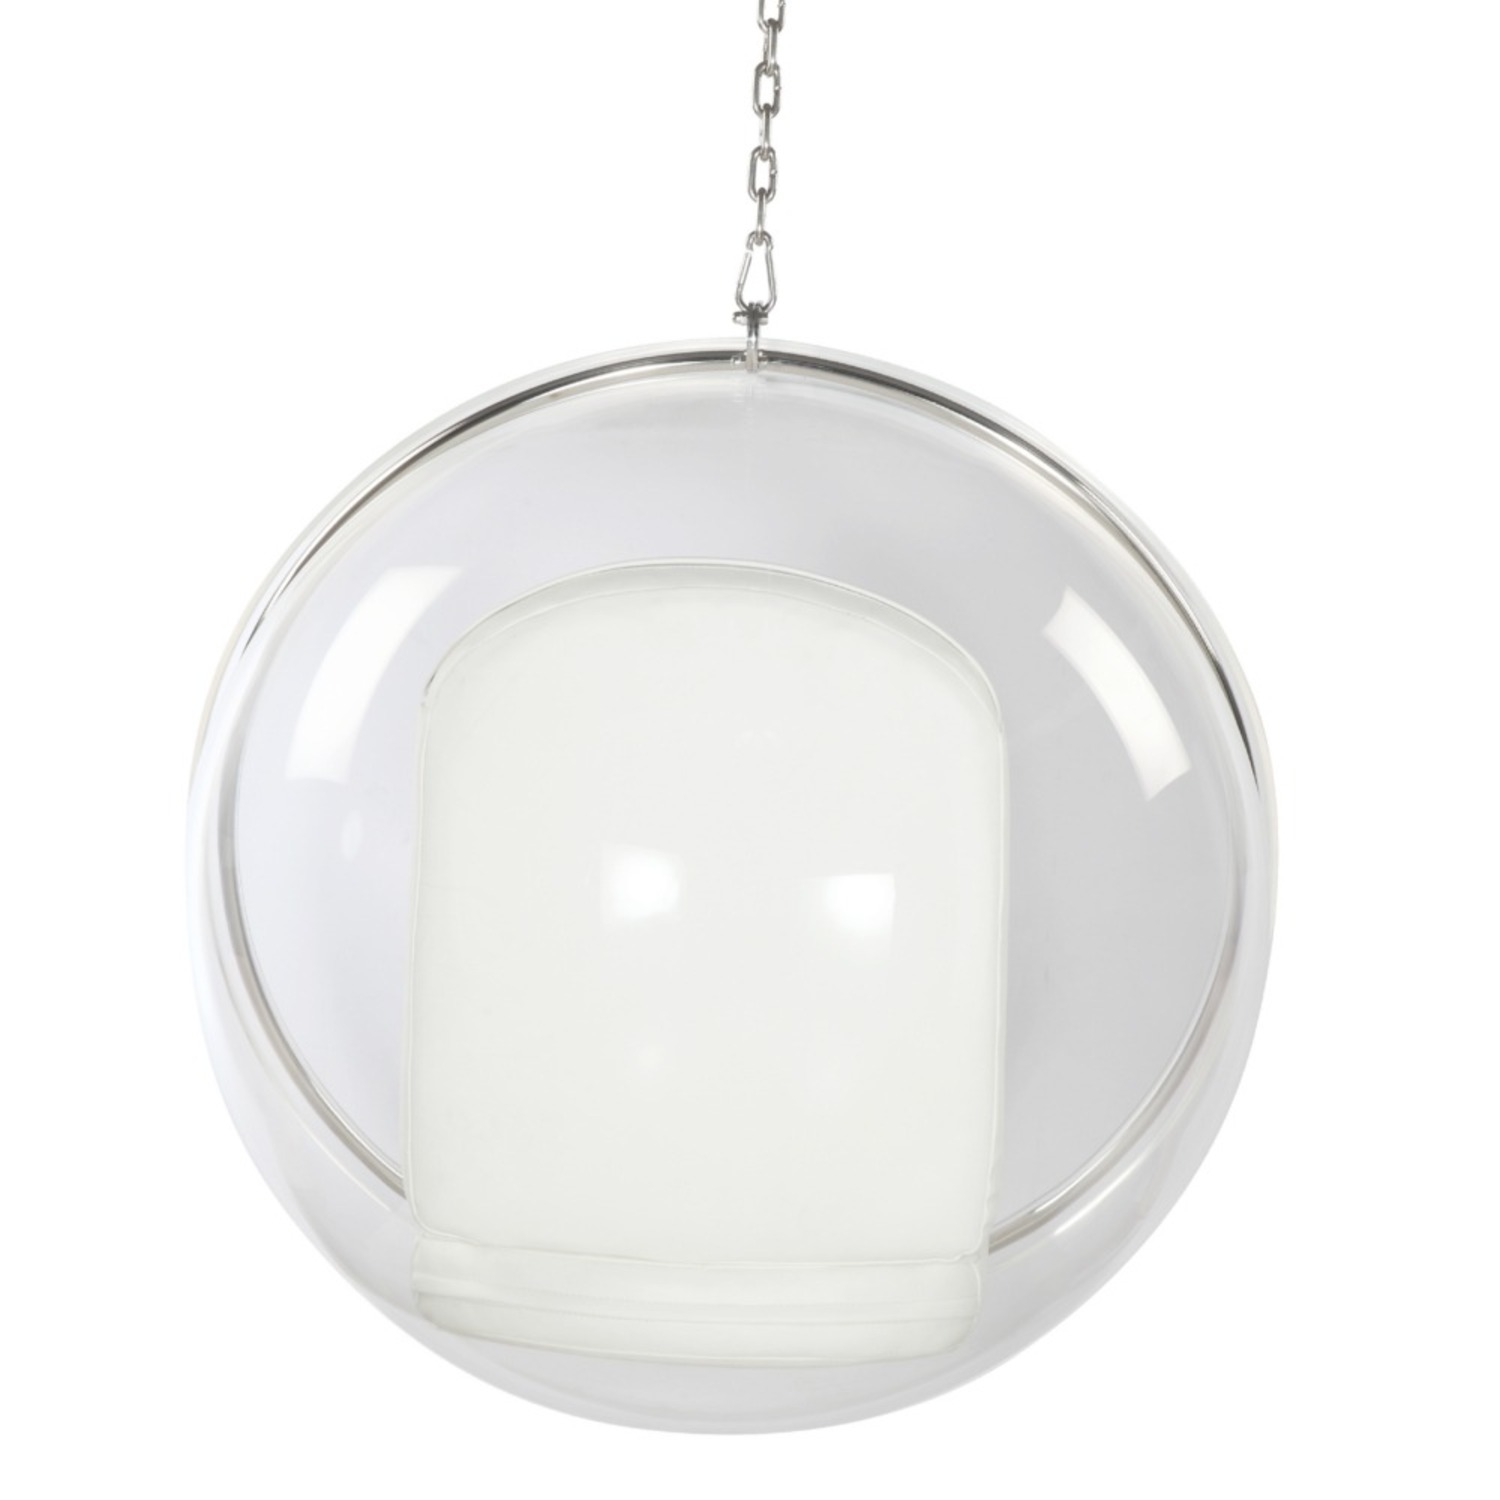 Hanging Chair In Clear Acrylic & White PU Leather - image-2